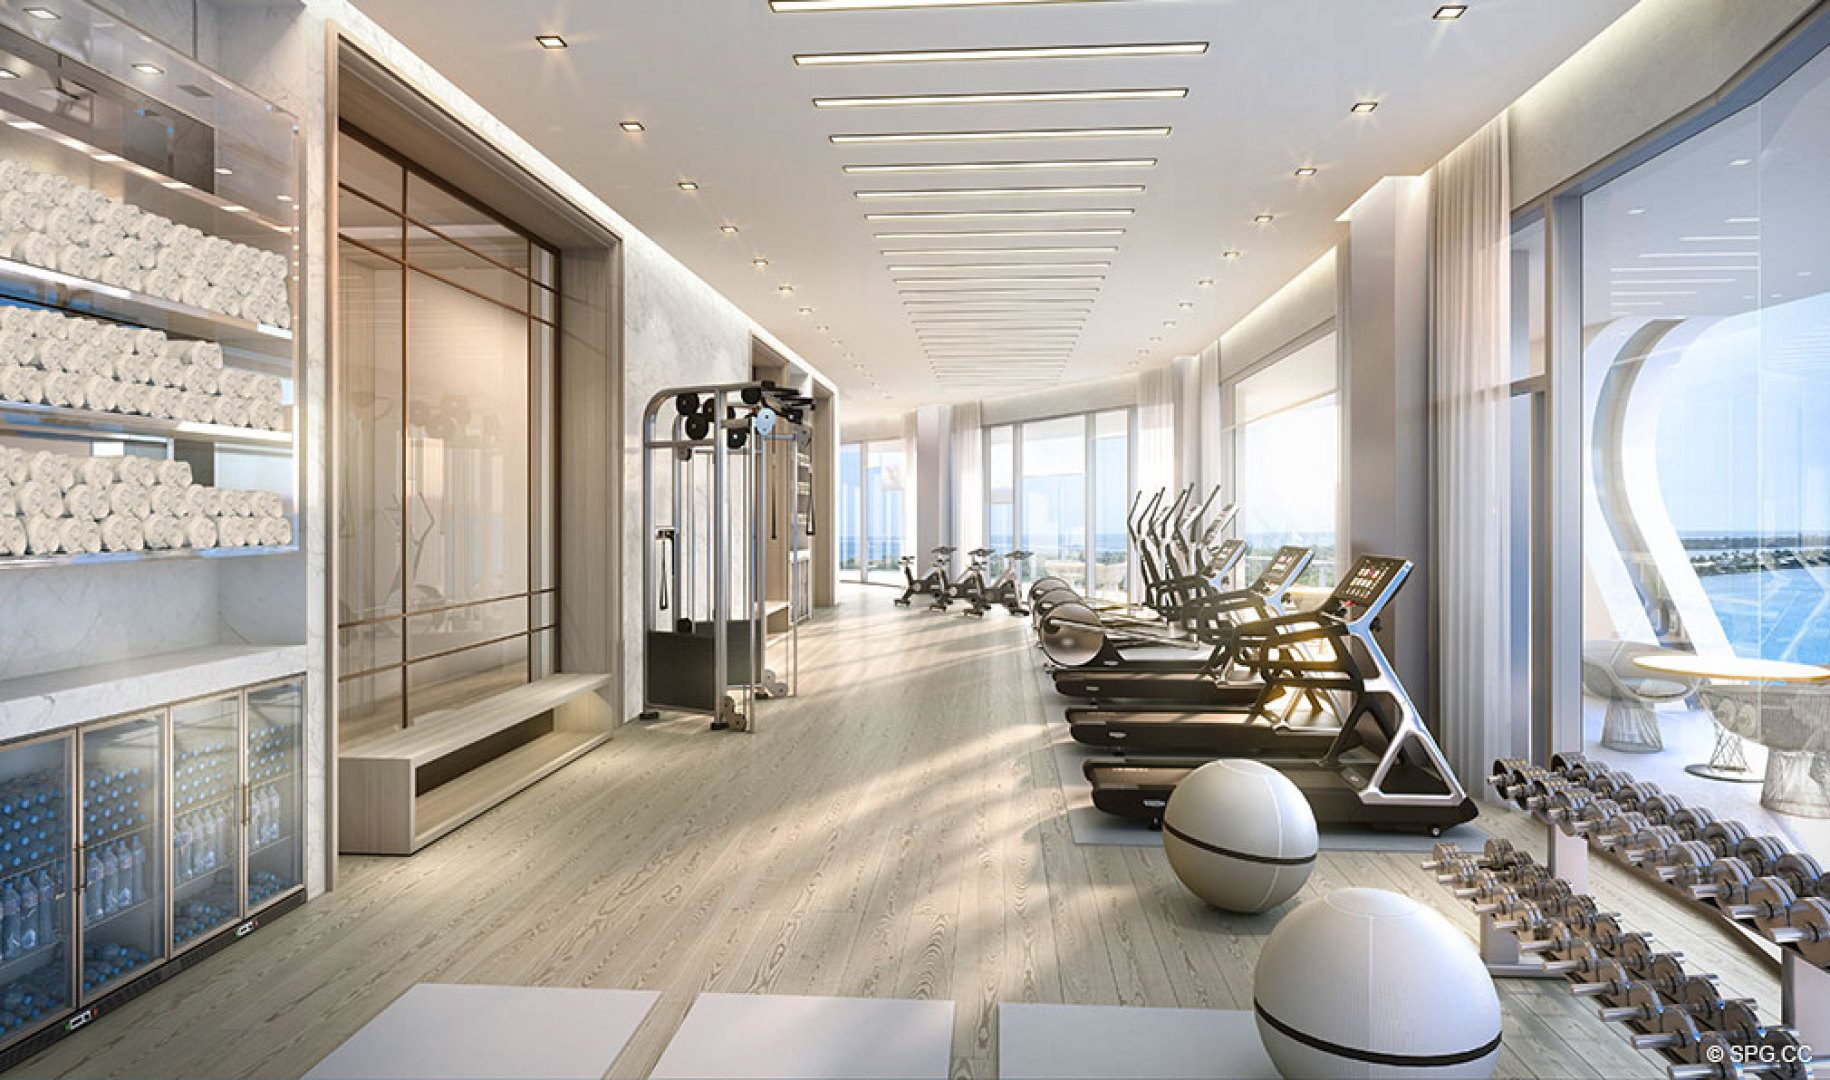 Fitness Center at The Bristol, Luxury Waterfront Condos in West Palm Beach, Florida 33401